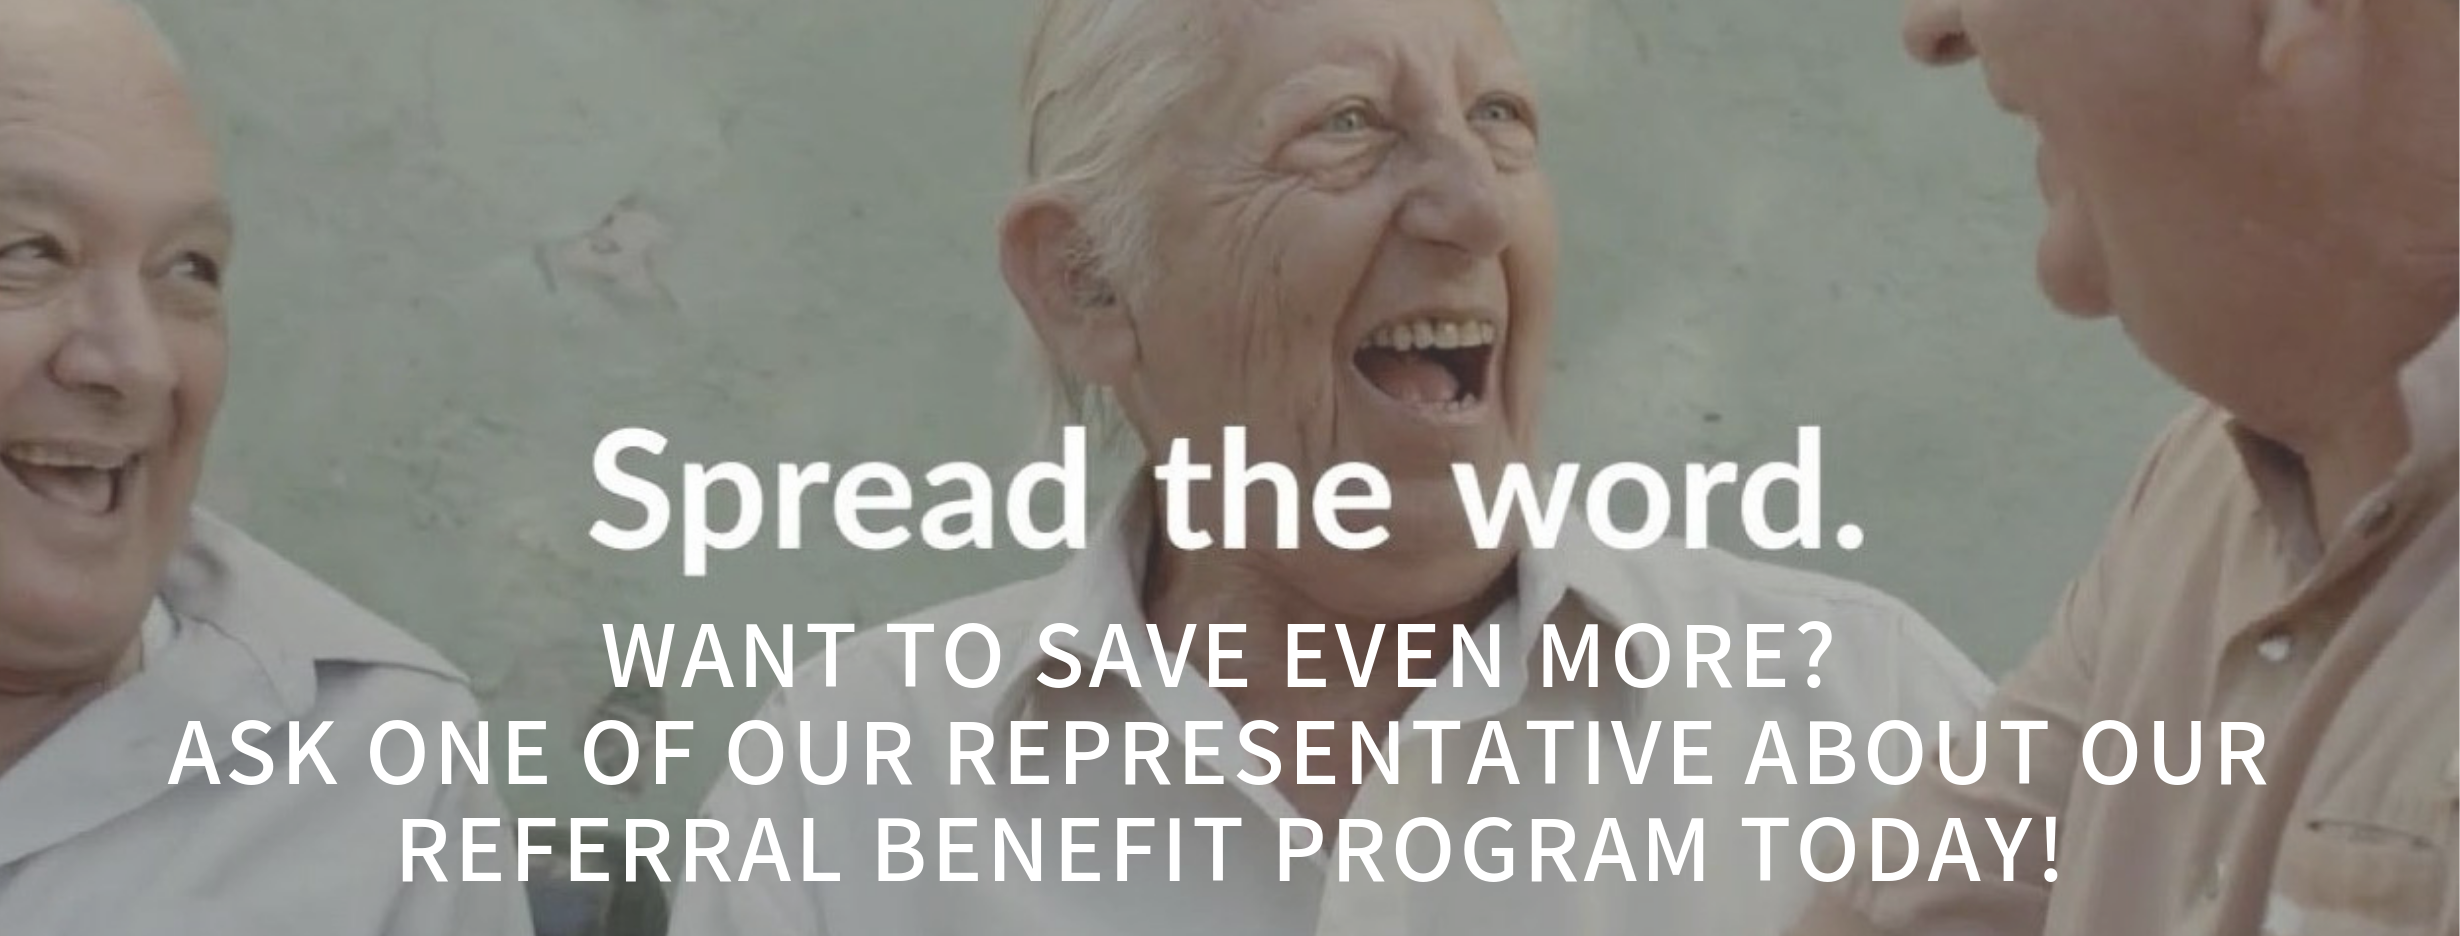 referral benefits